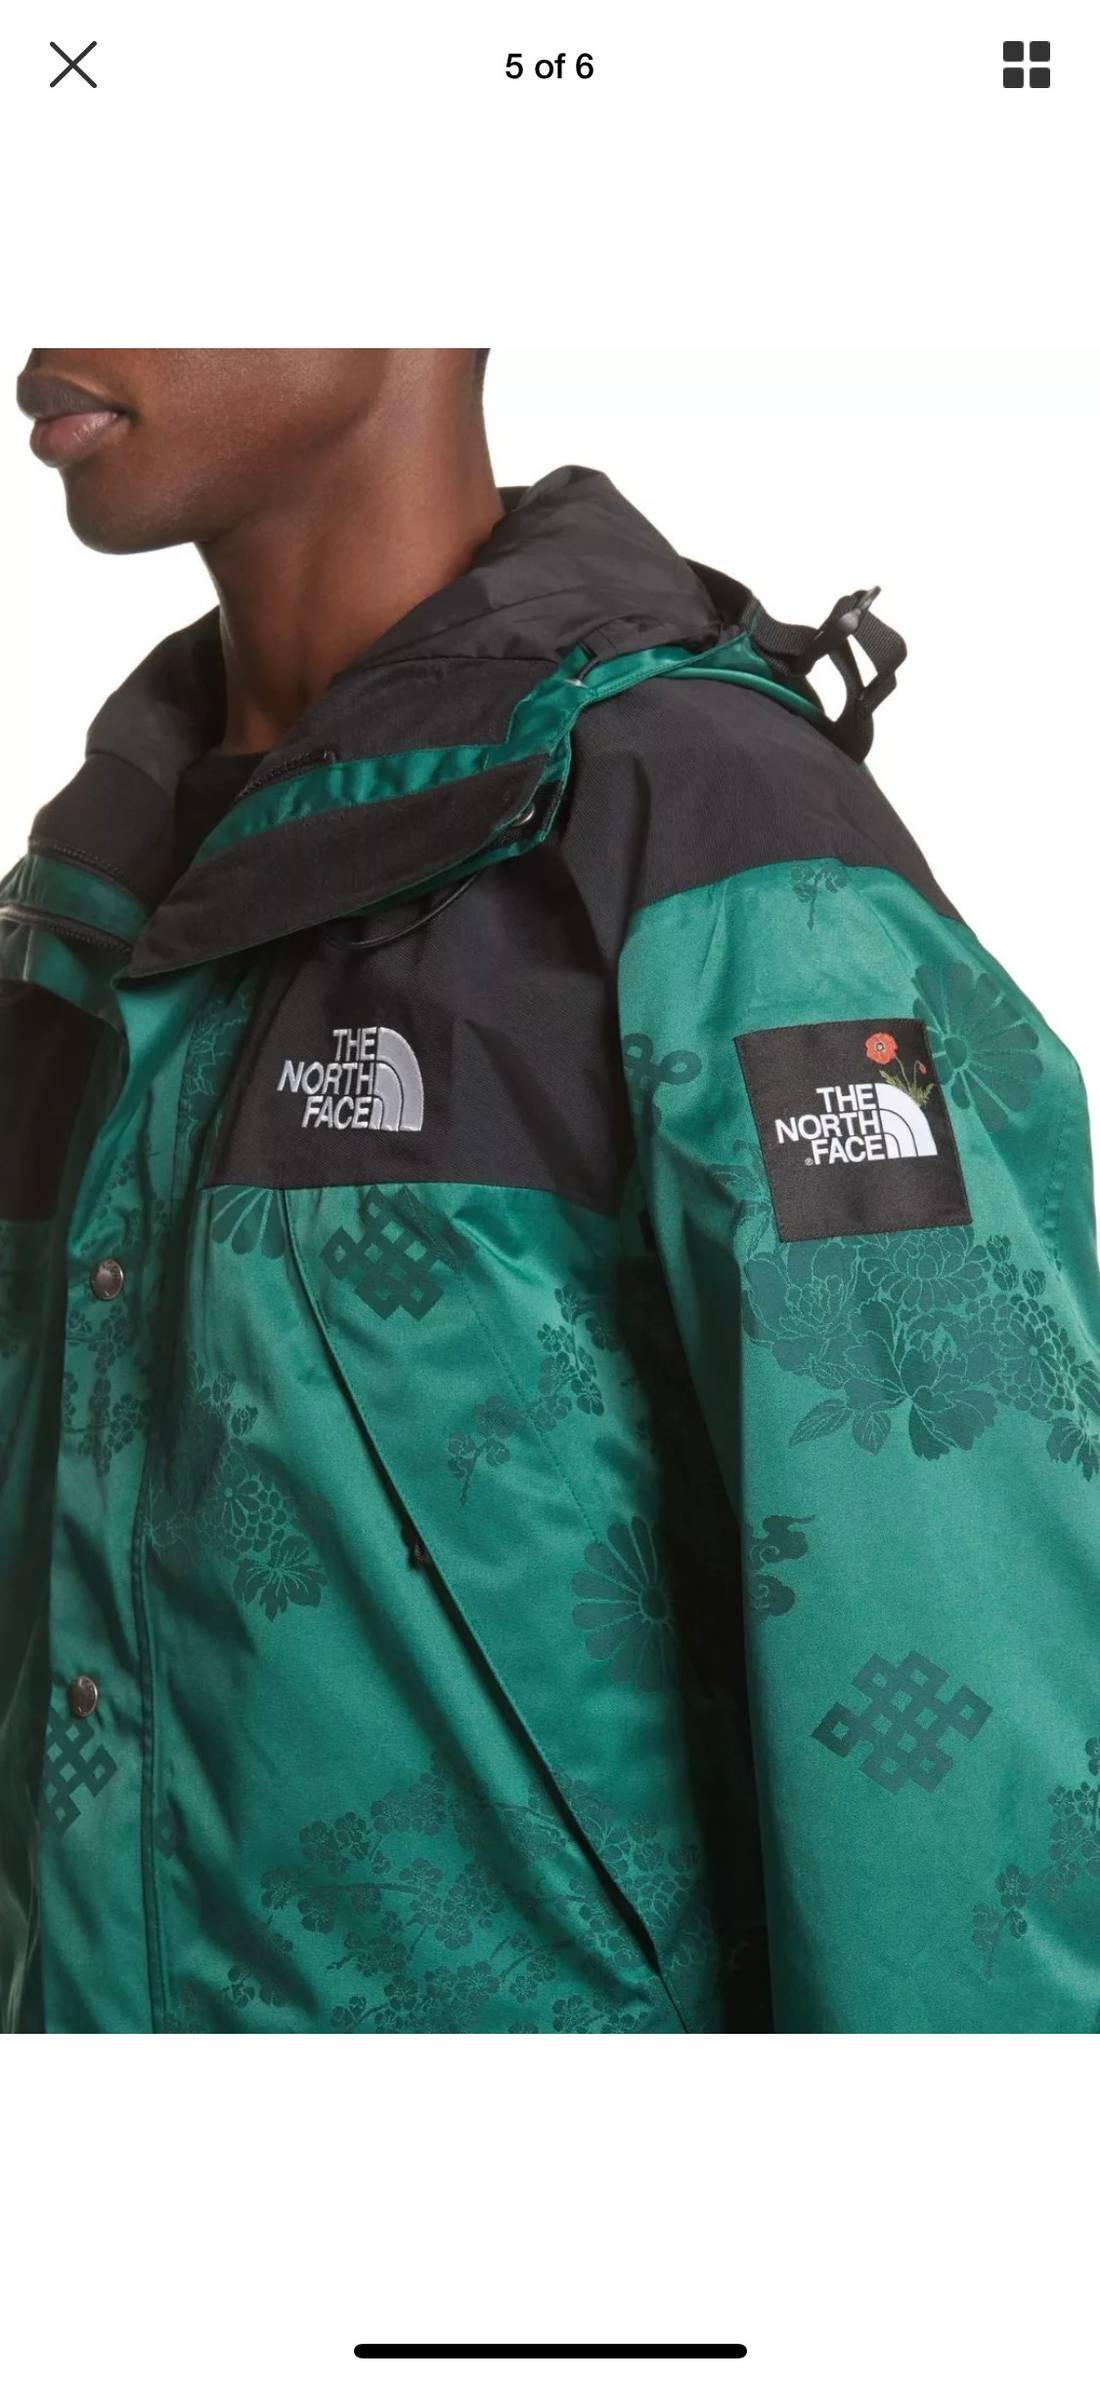 89dcb33a3 wholesale the north face vest nordstrom 5c243 2bf00